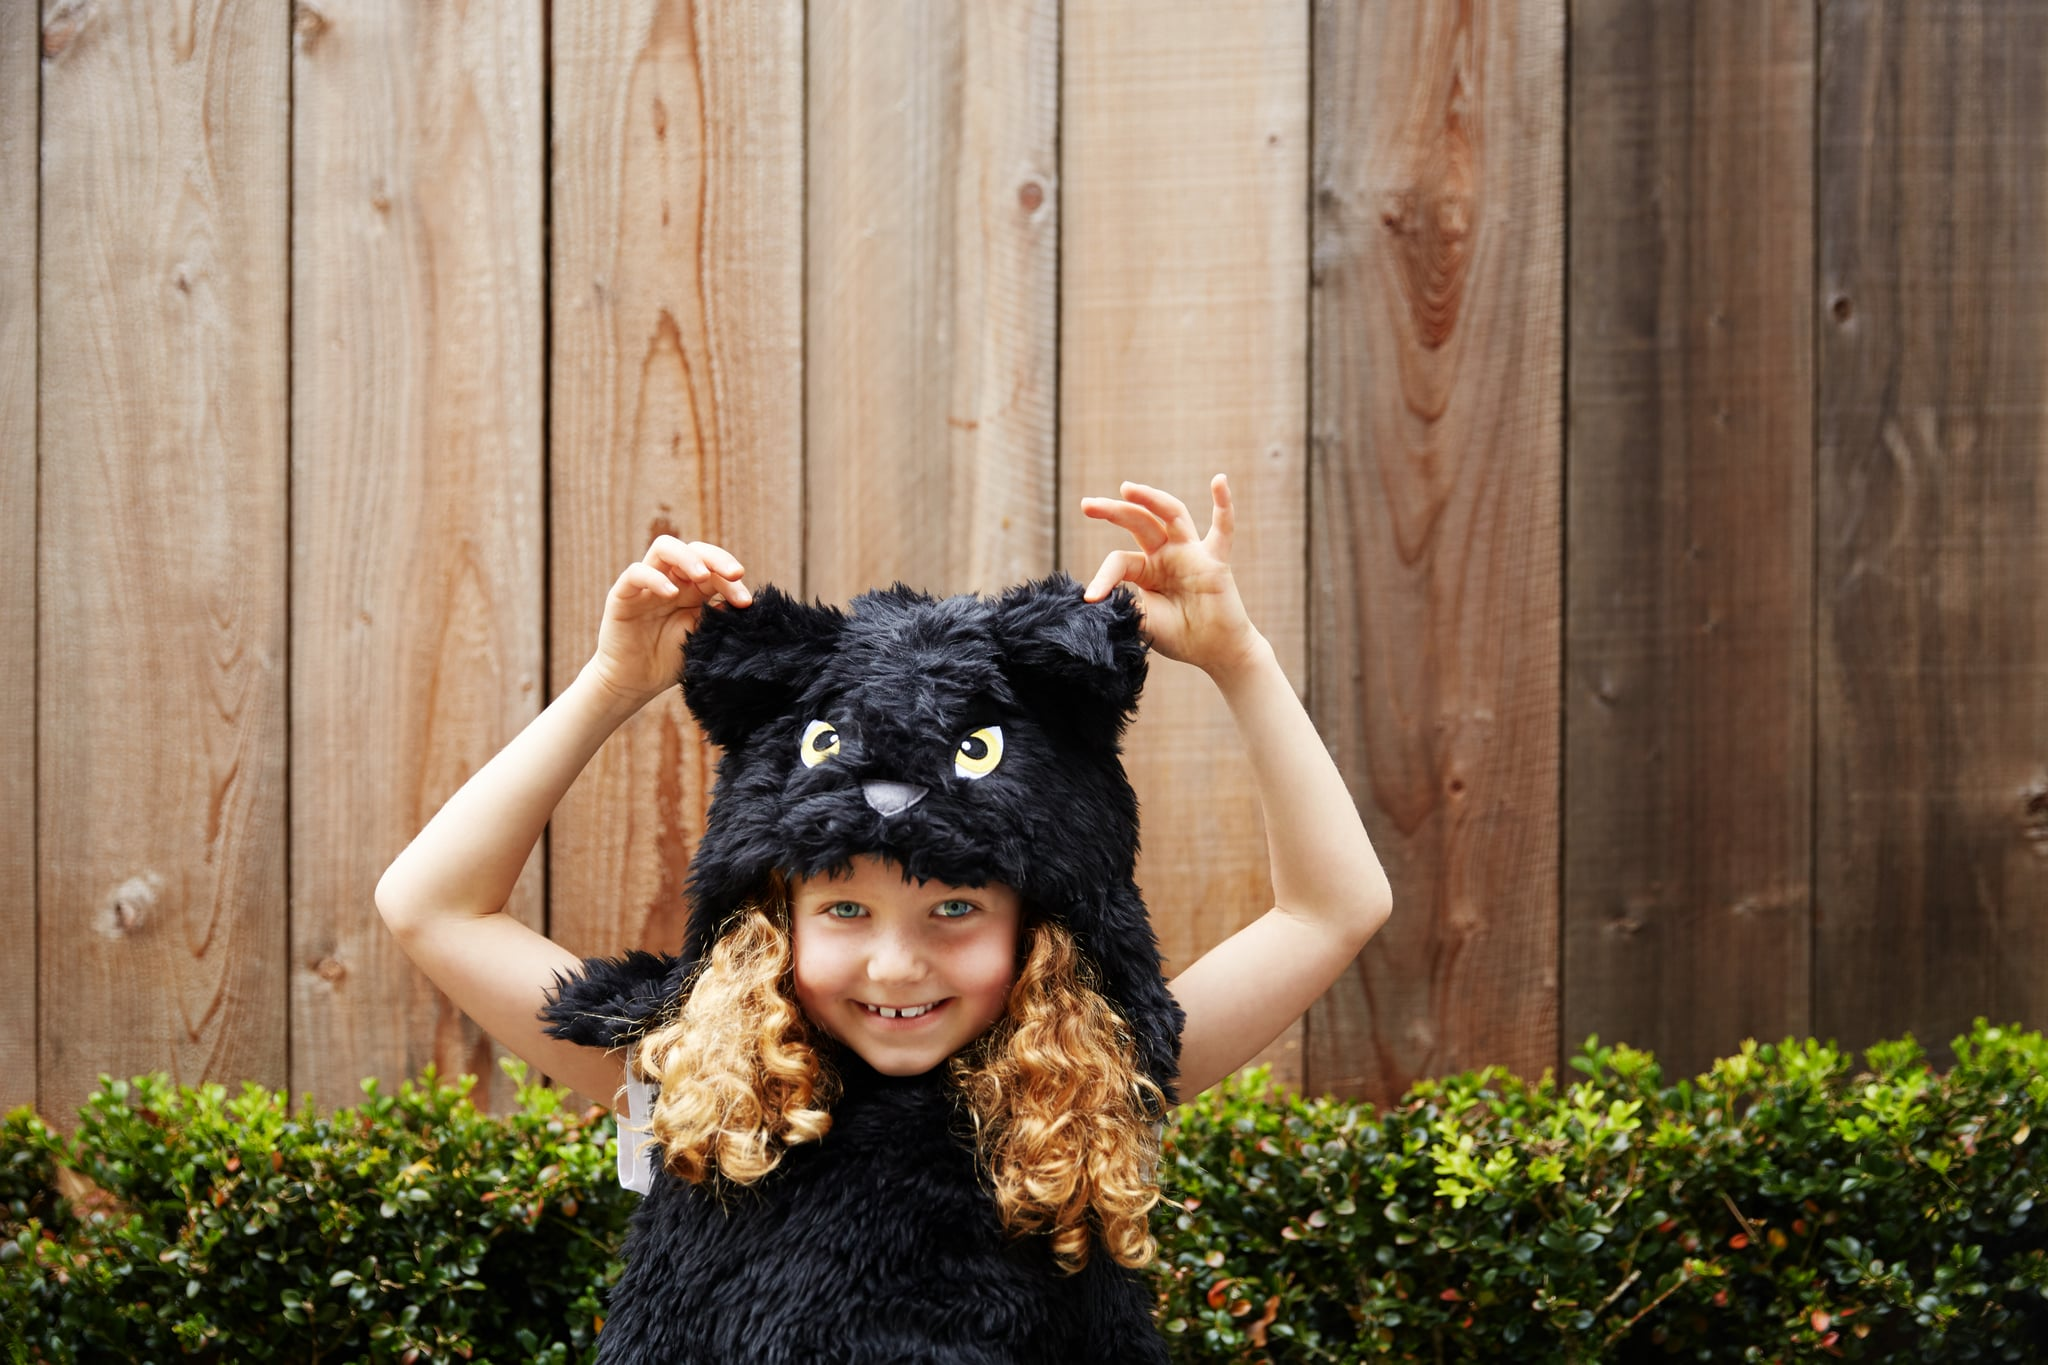 The Ultimate Nostalgic Halloween Bucket List to Complete With Your Kids